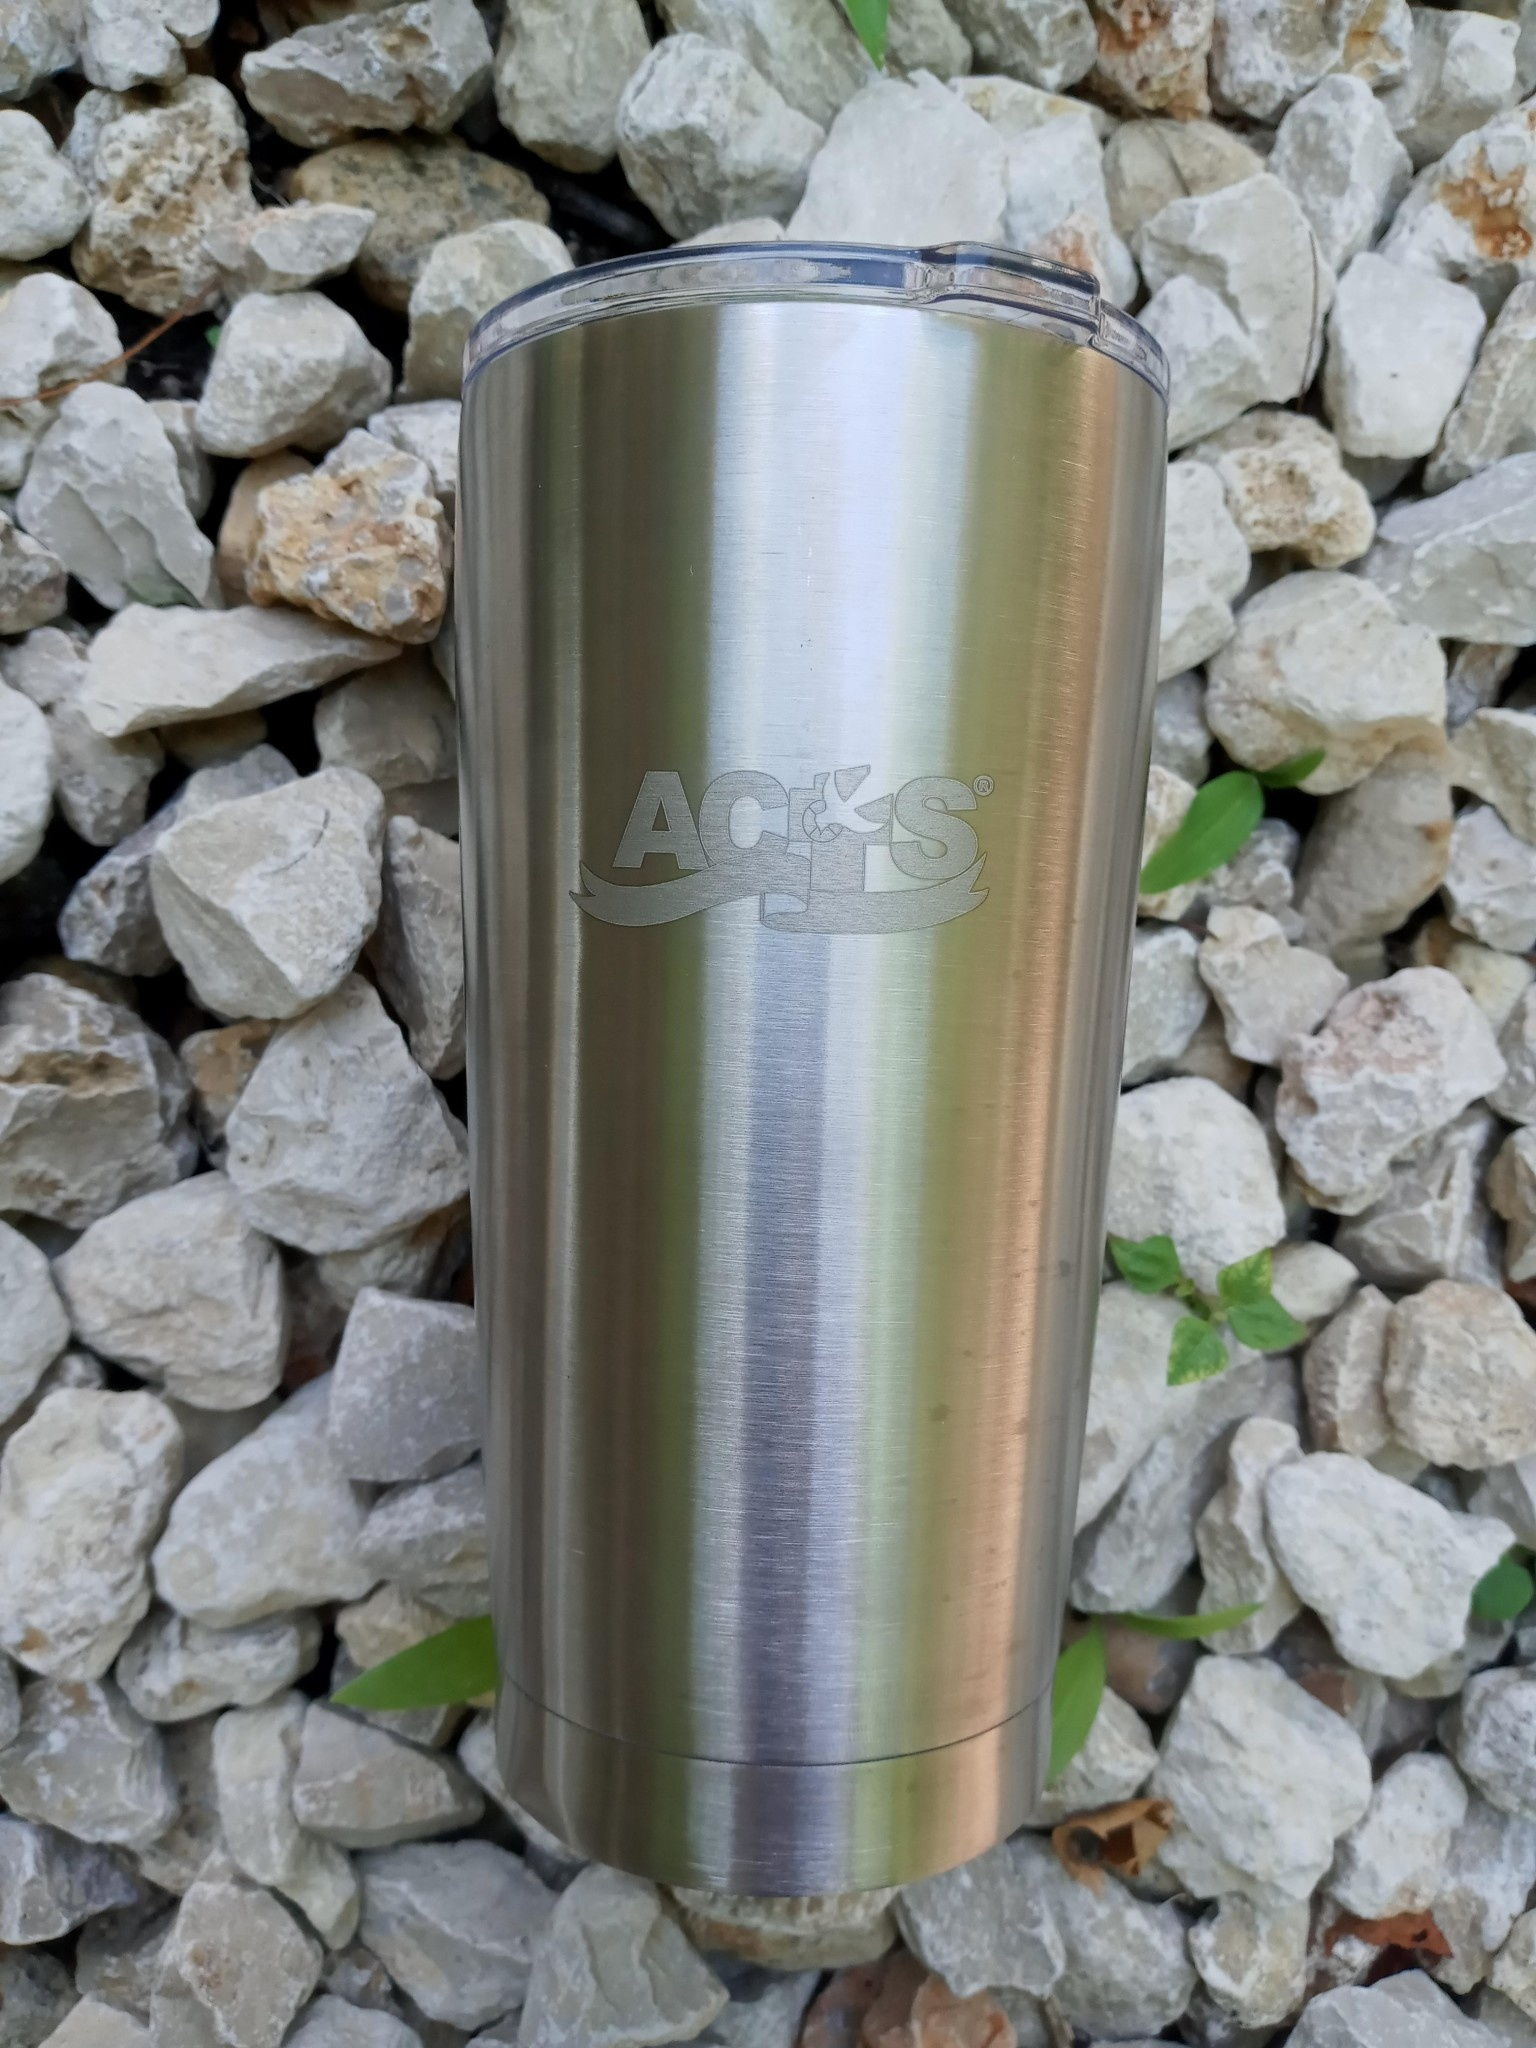 ACTS 20 oz Stainless Steel Tumbler